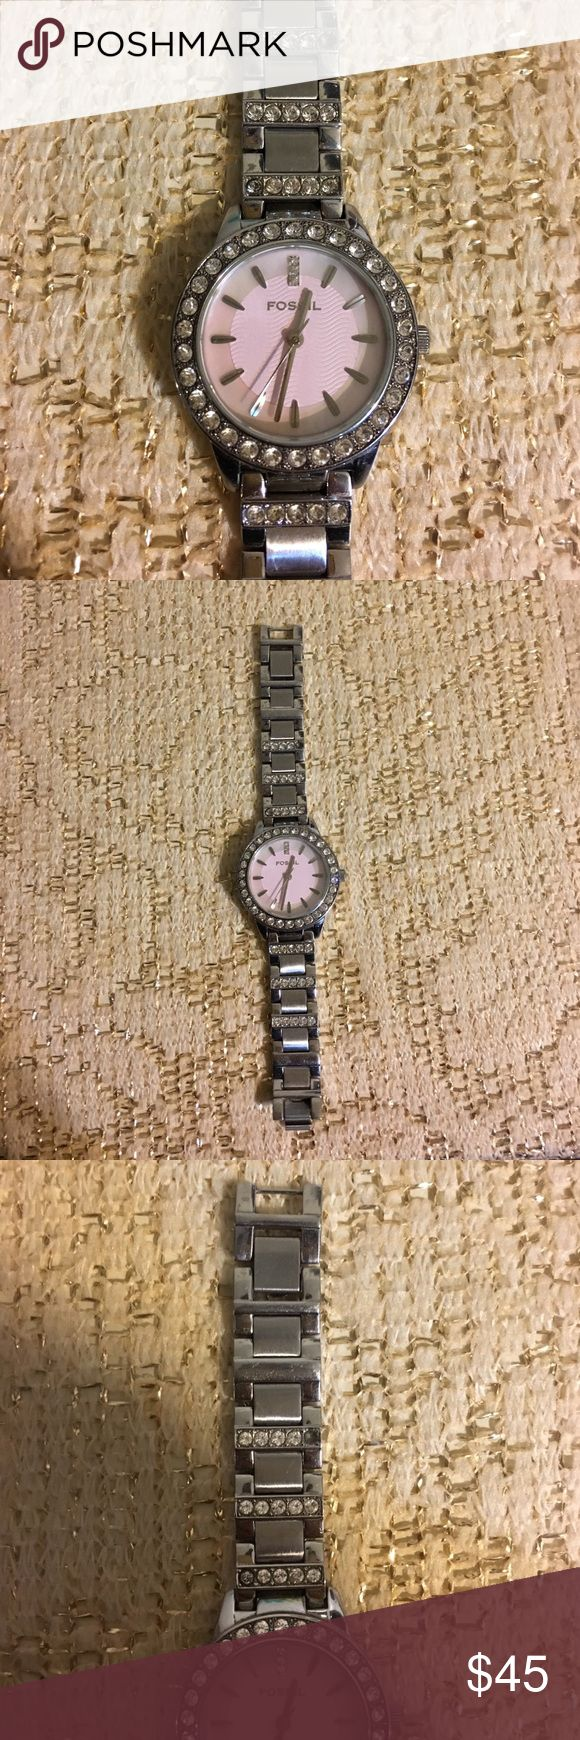 ✨FOSSIL Silver Watch!✨ Silver Watch from Fossil. 💯Authentic. Used, has a missing rhinestone, and it stopped working, HOWEVER 🤔, with a good watch repair person it can work again!👌🏼 Measures to 6 1/2 inches! OFFERS ARE WELCOME! 👏🏼 Fossil Accessories Watches